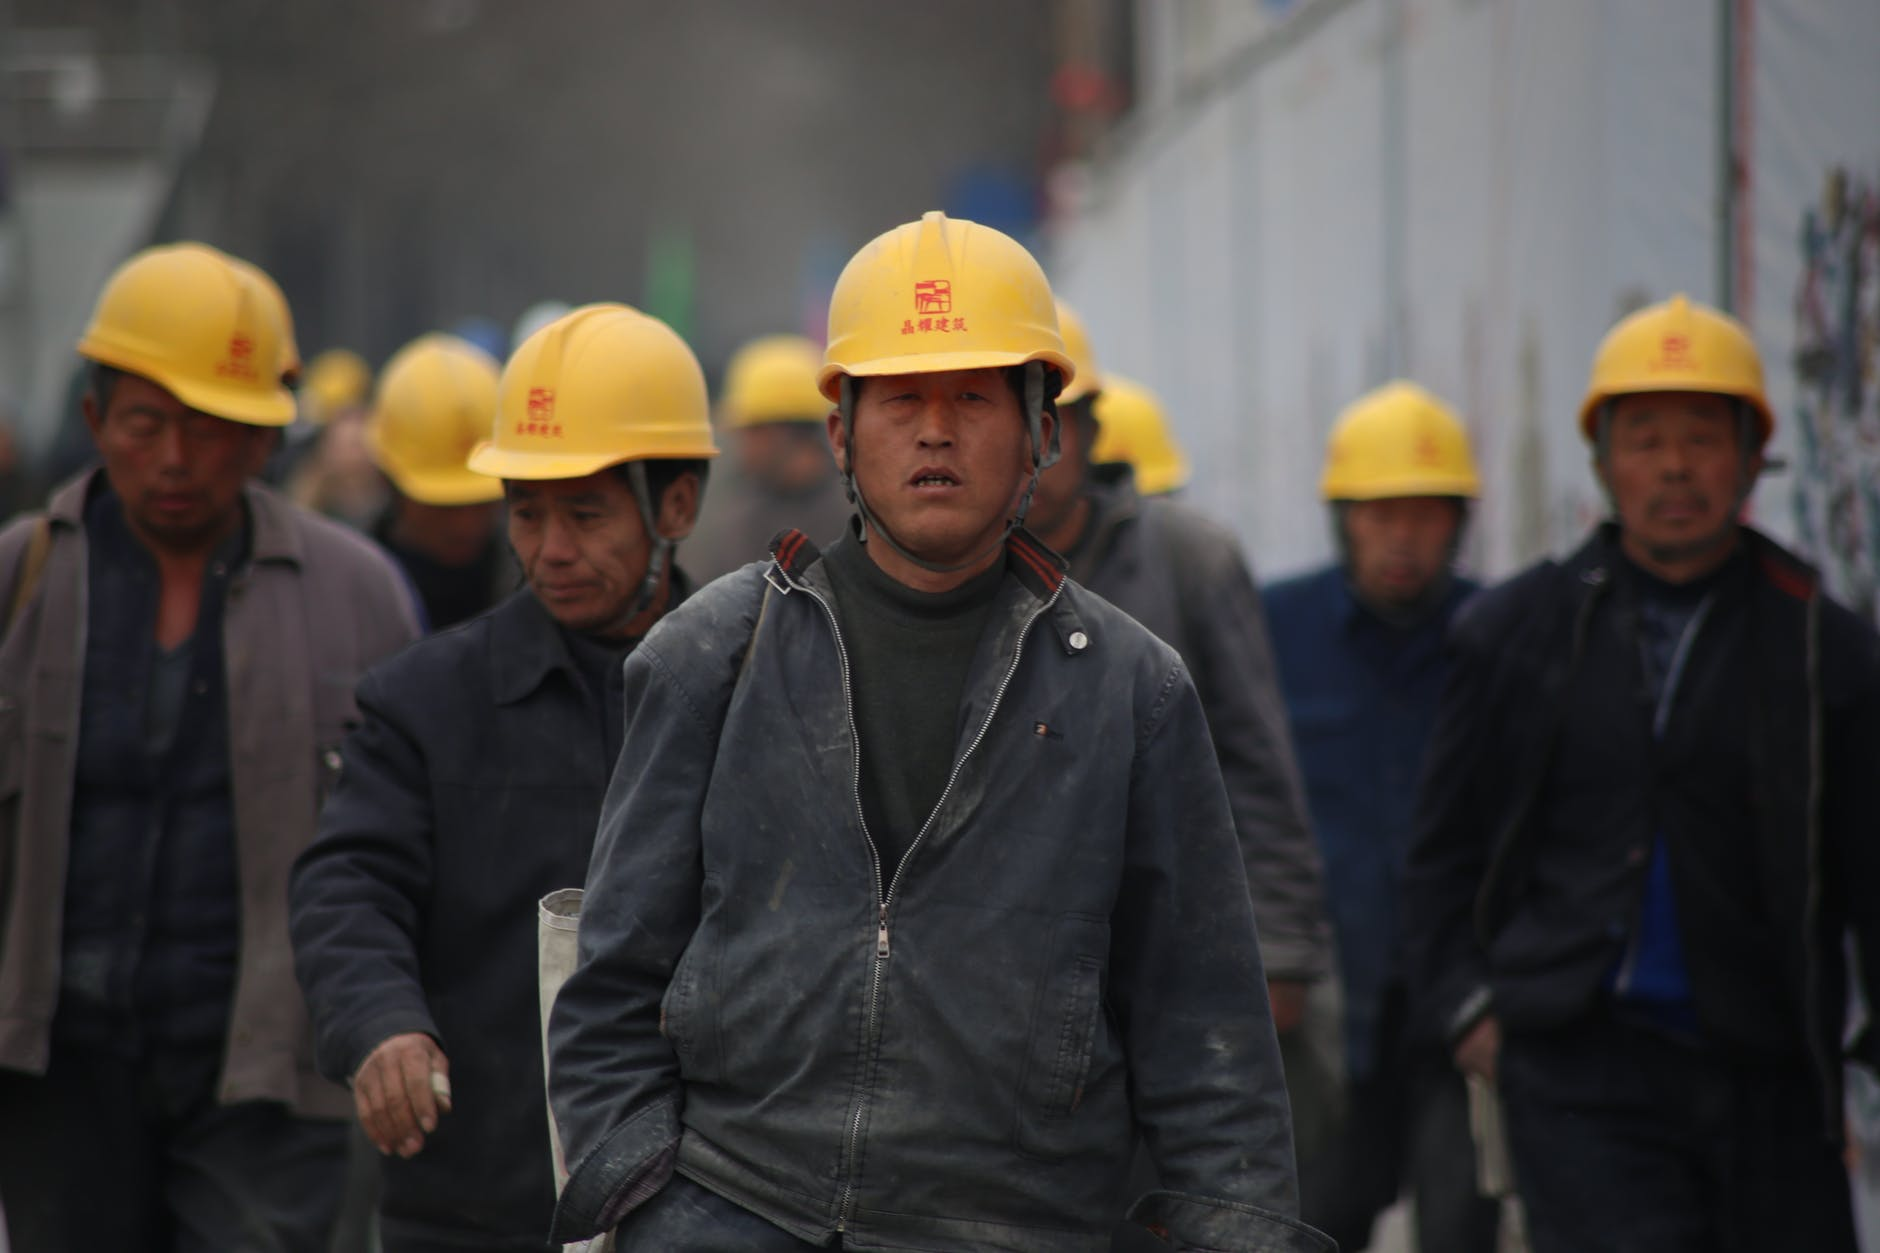 All You Need to Know About Getting Chinese Work Permit to Work Legally in China